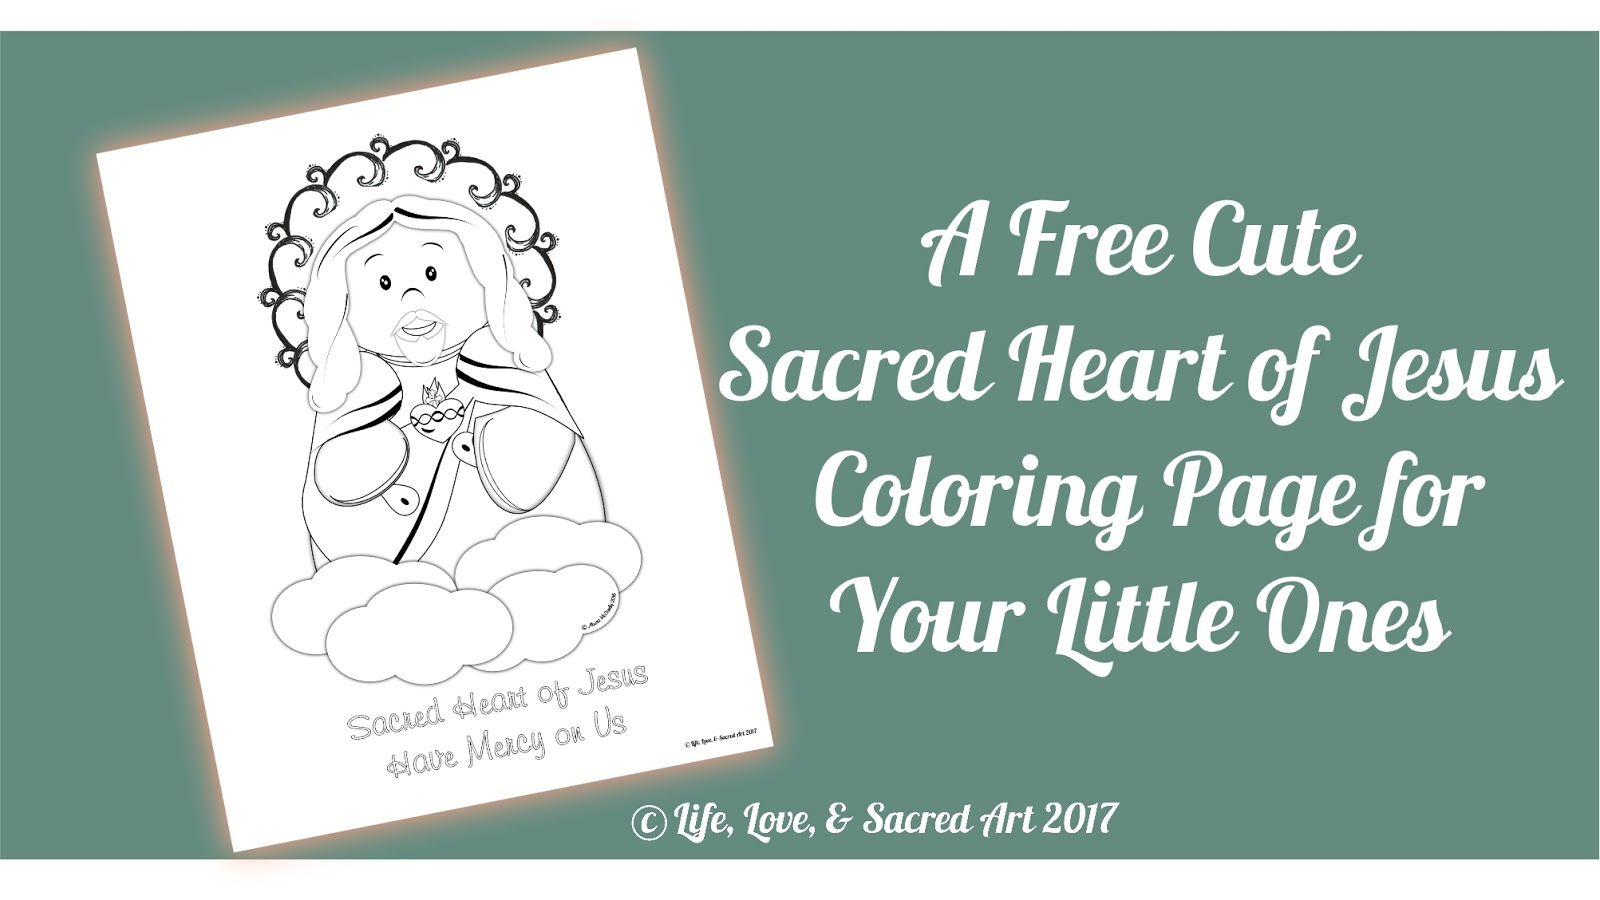 Life, Love, & Sacred Art: A Free Cute Sacred Heart of Jesus Coloring ...